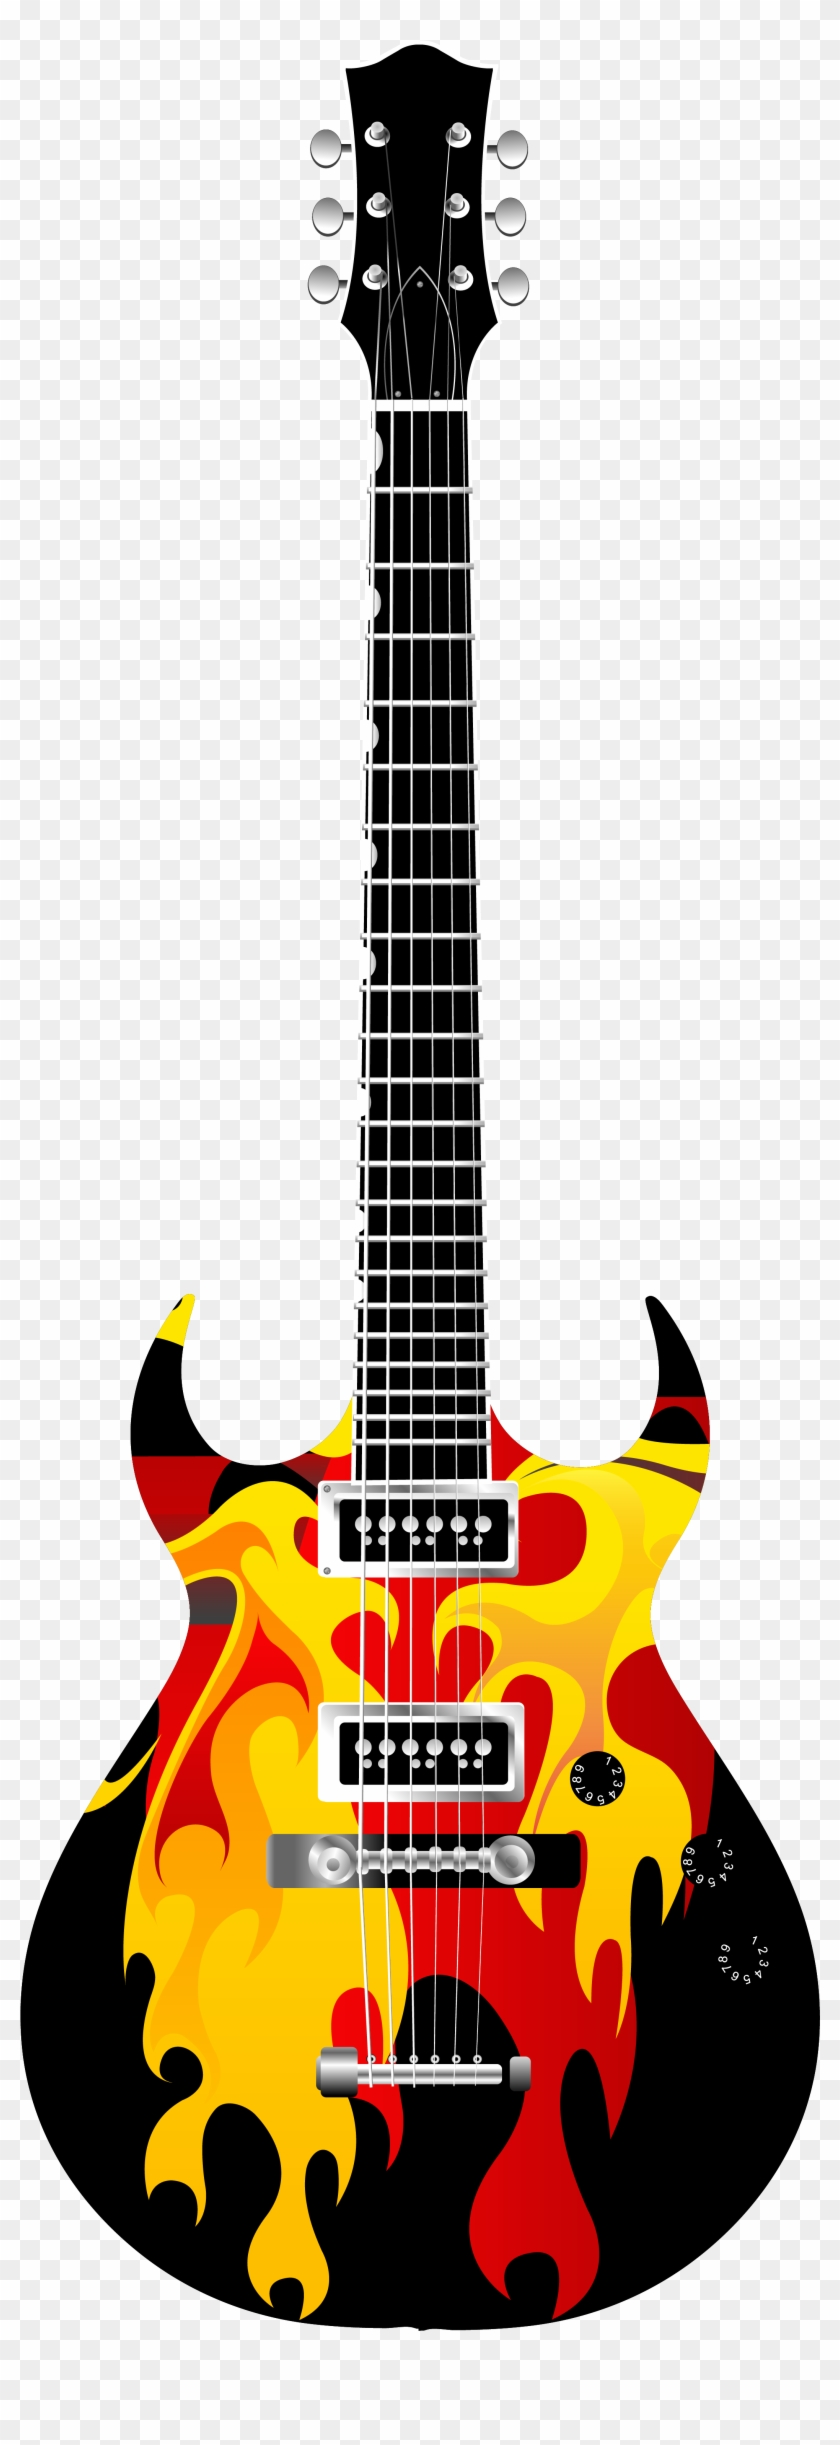 Guitar Clipart On Fire - Electric Guitar Clipart Png #24454